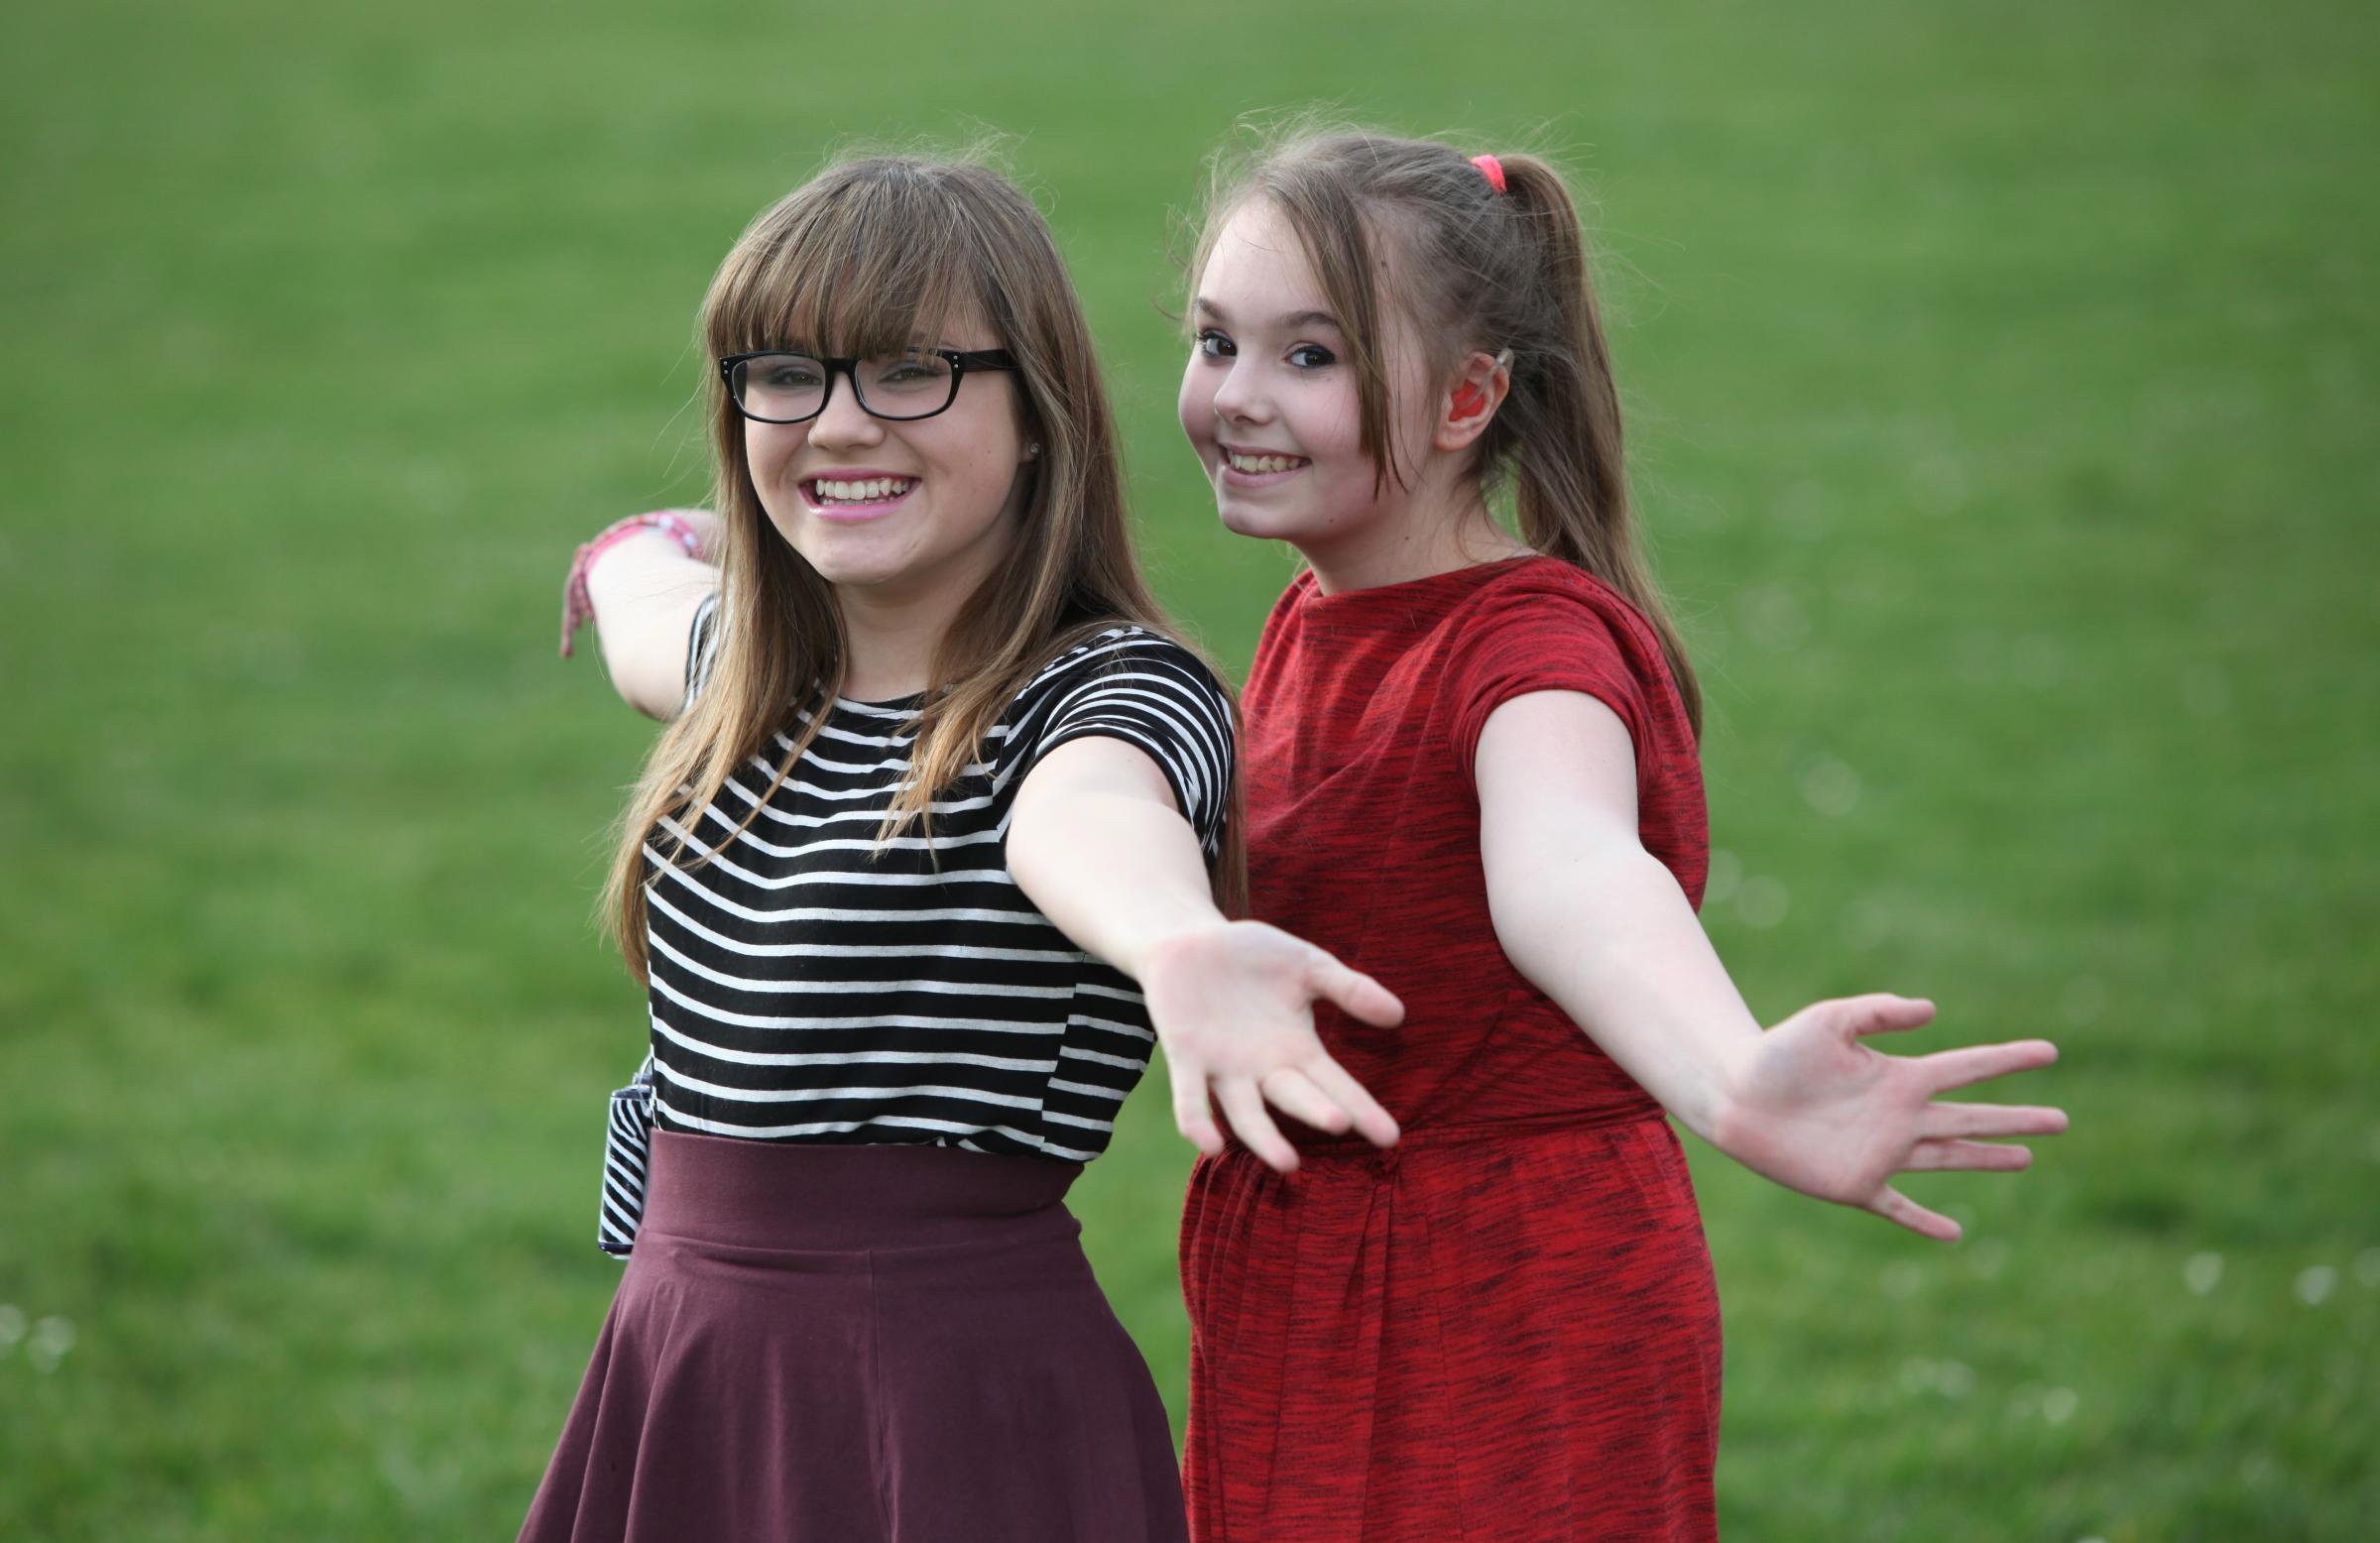 TeenStar finalists Lauren Thomas, left, and Rhiannon Dyke, both of Romsey